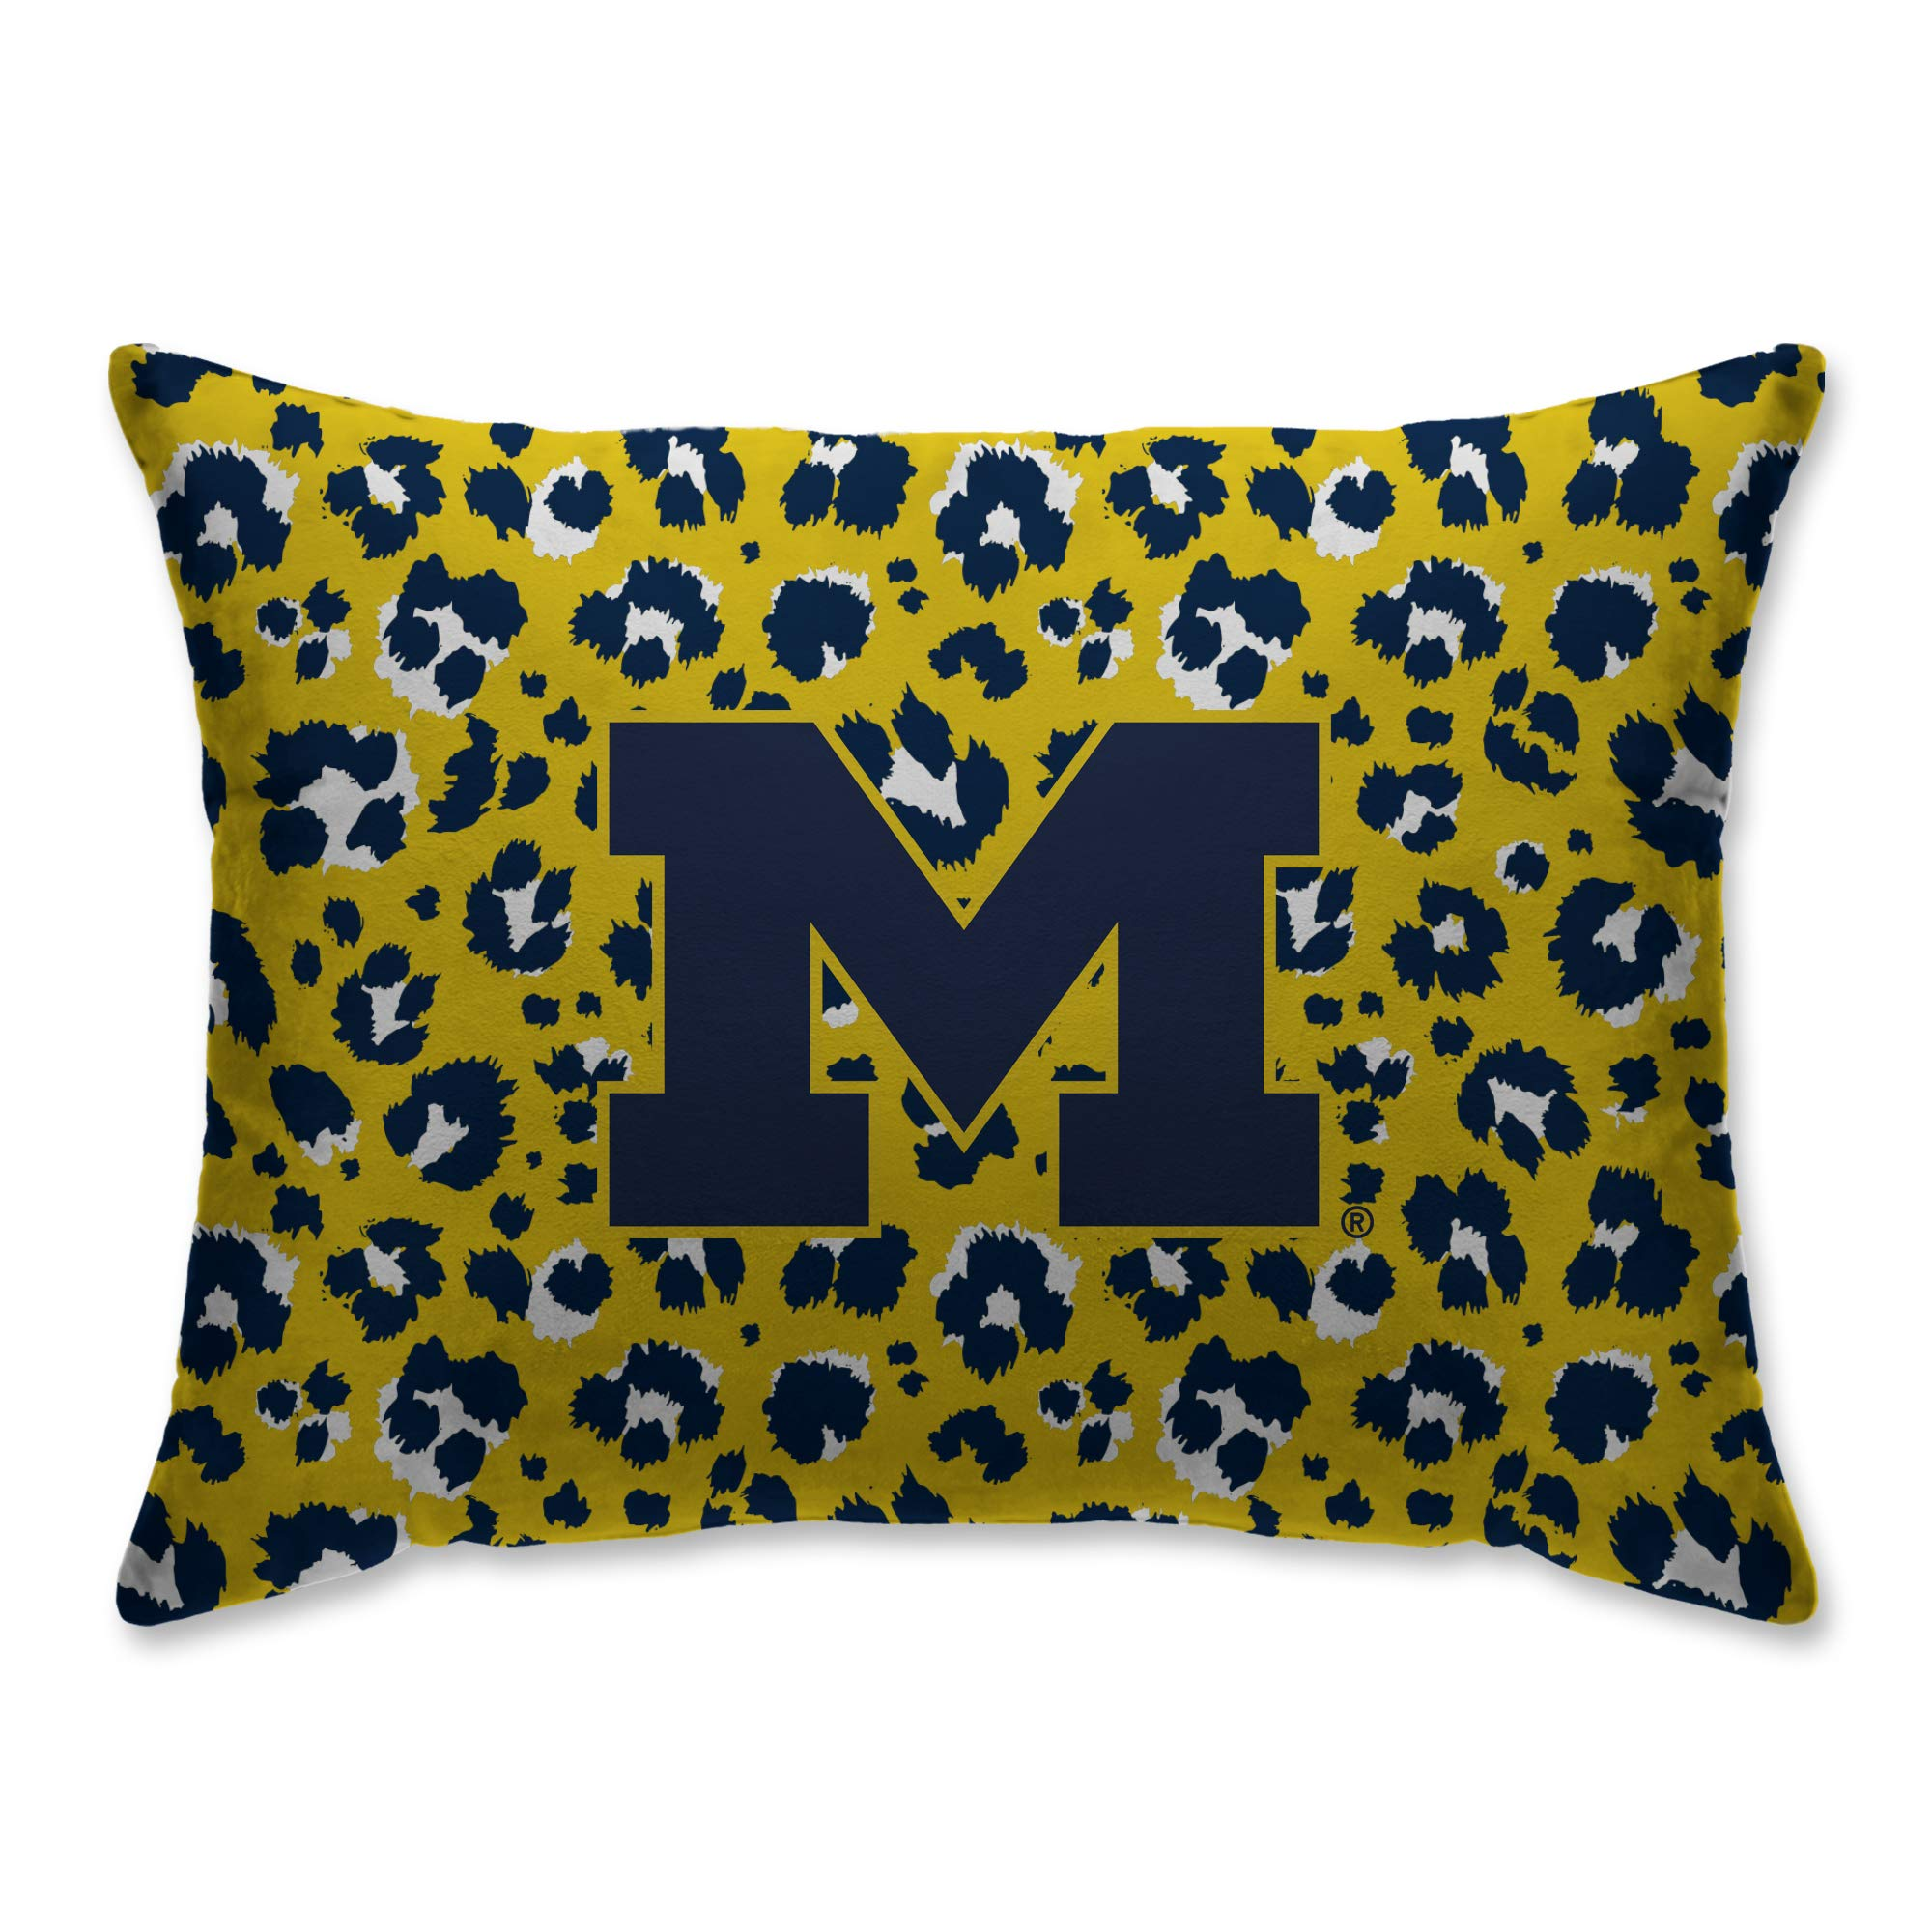 Pegasus Sports Michigan Wolverines 20'' x 26'' Leopard Plush Bed Pillow, Set of 2#690118519 by Pegasus Sports